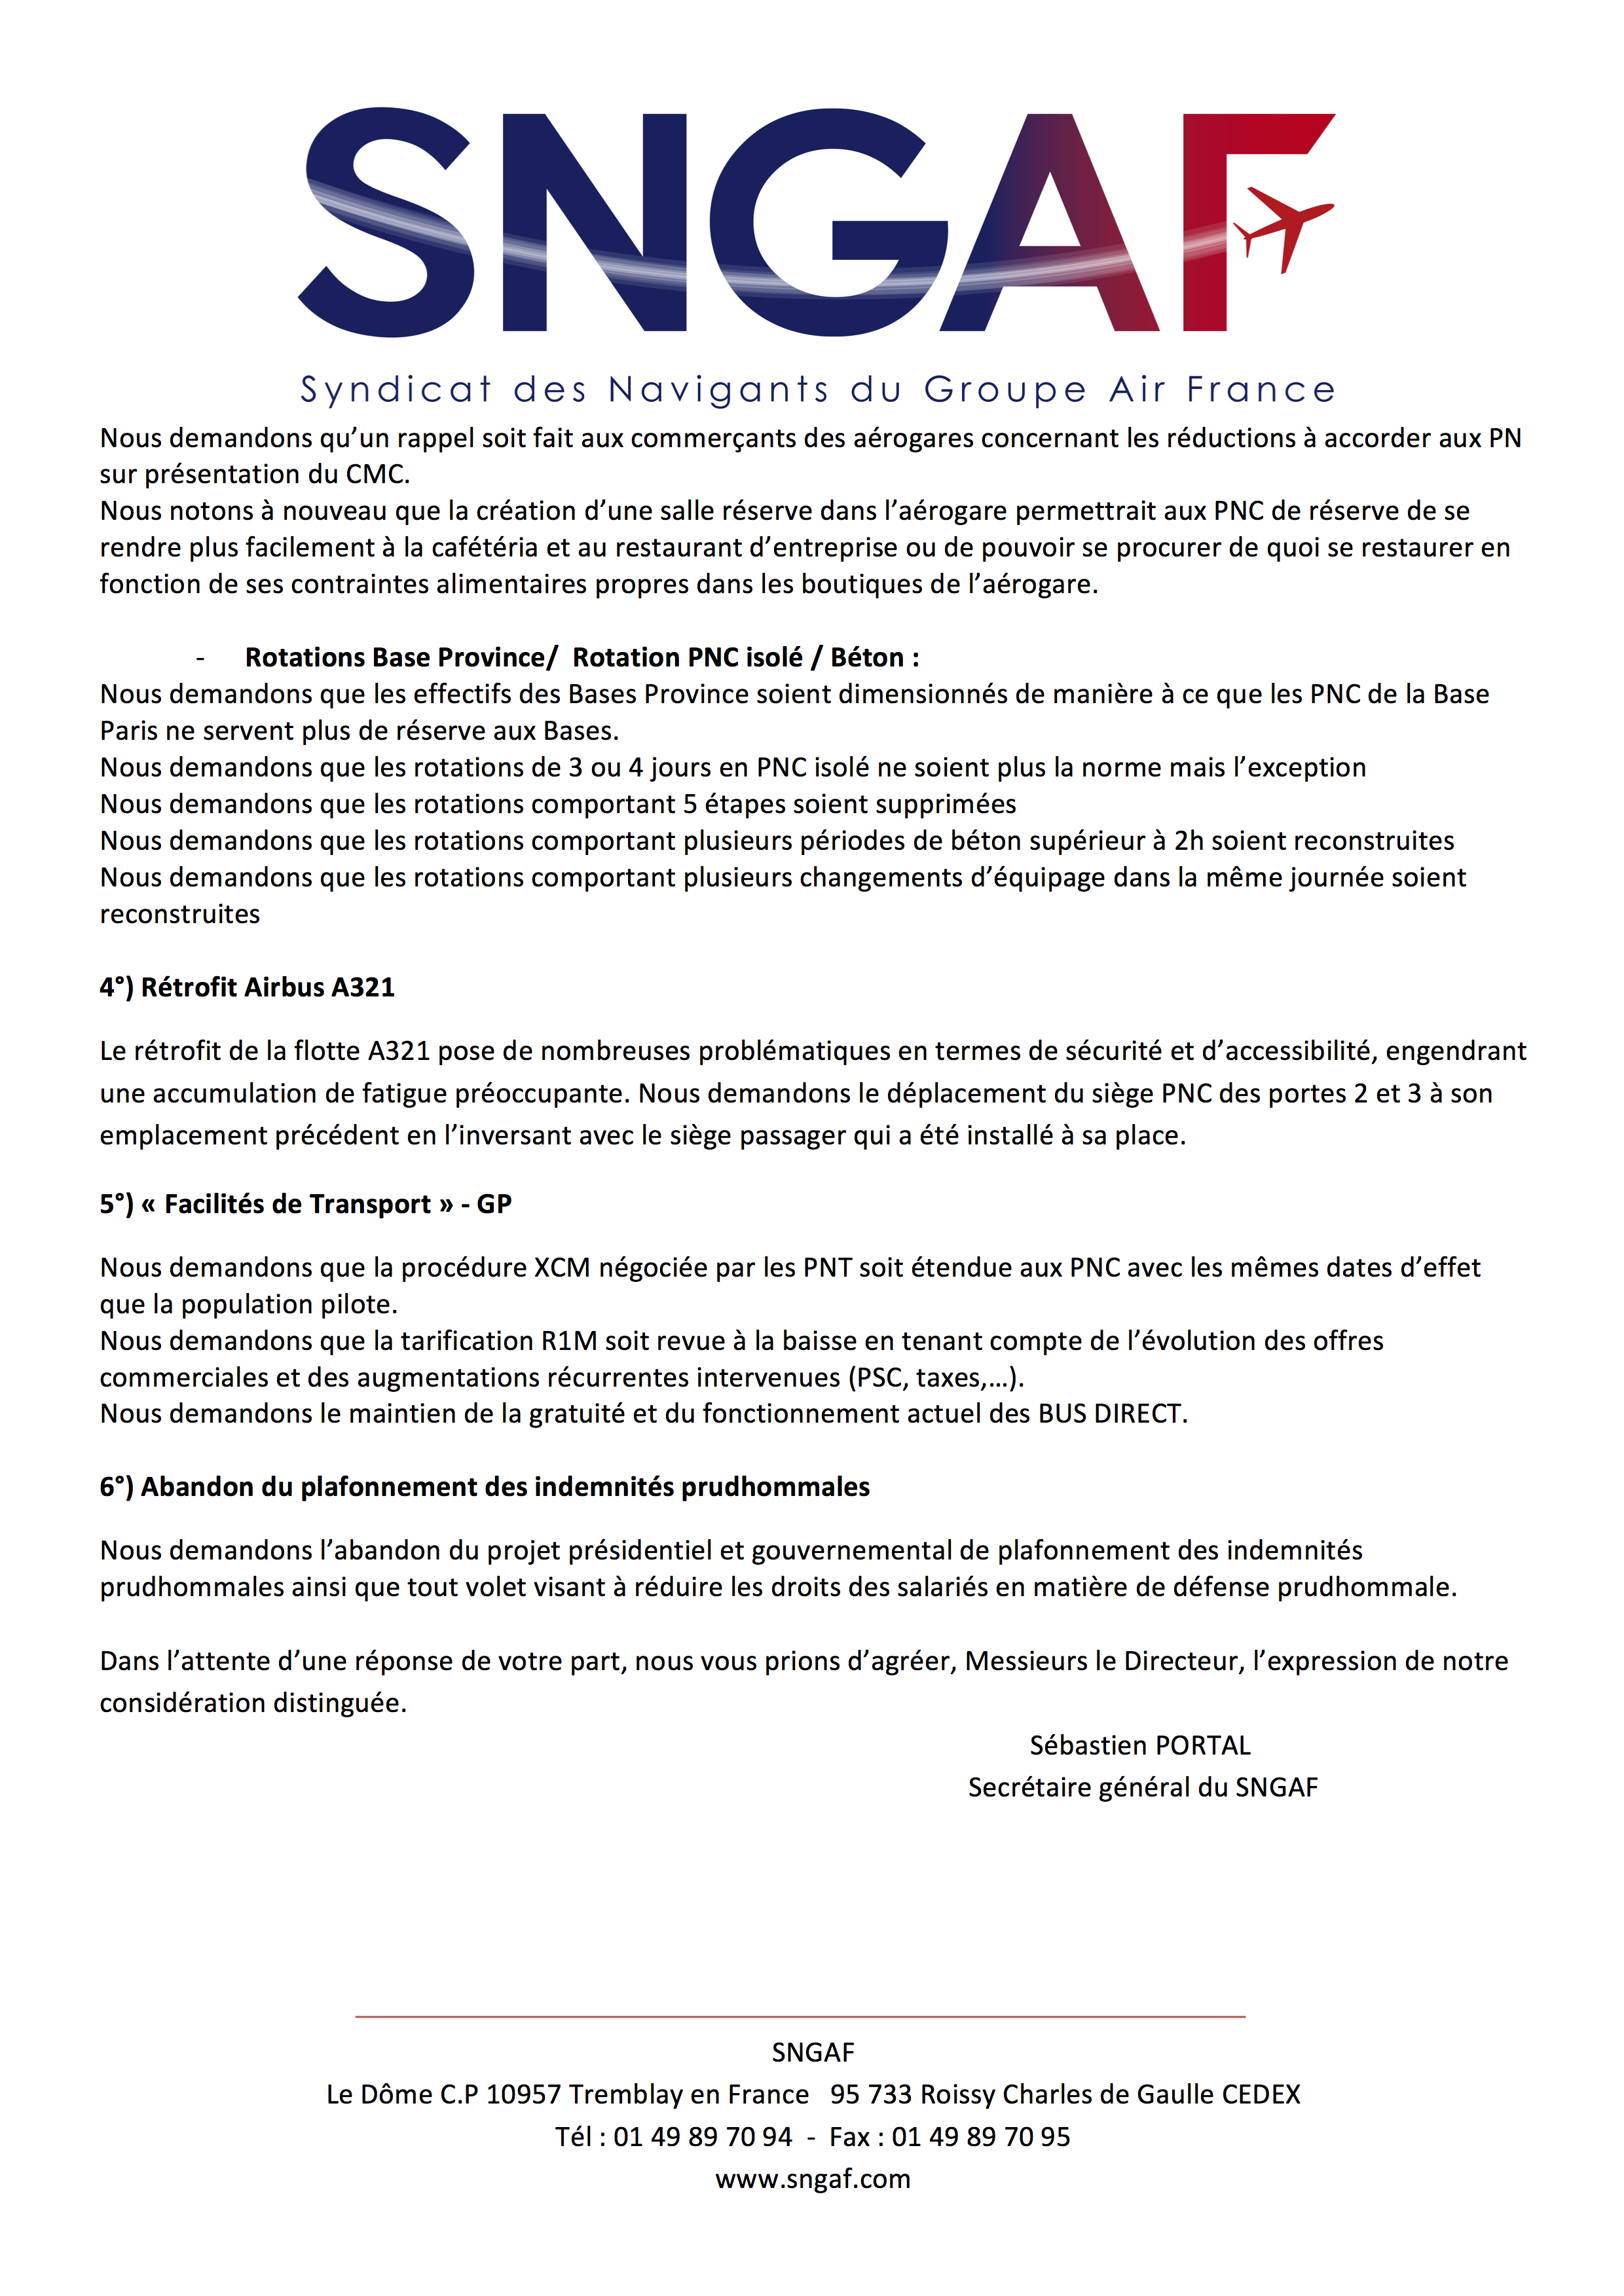 20170823 Courrier prolongation greve a compter du 1er septembre 3